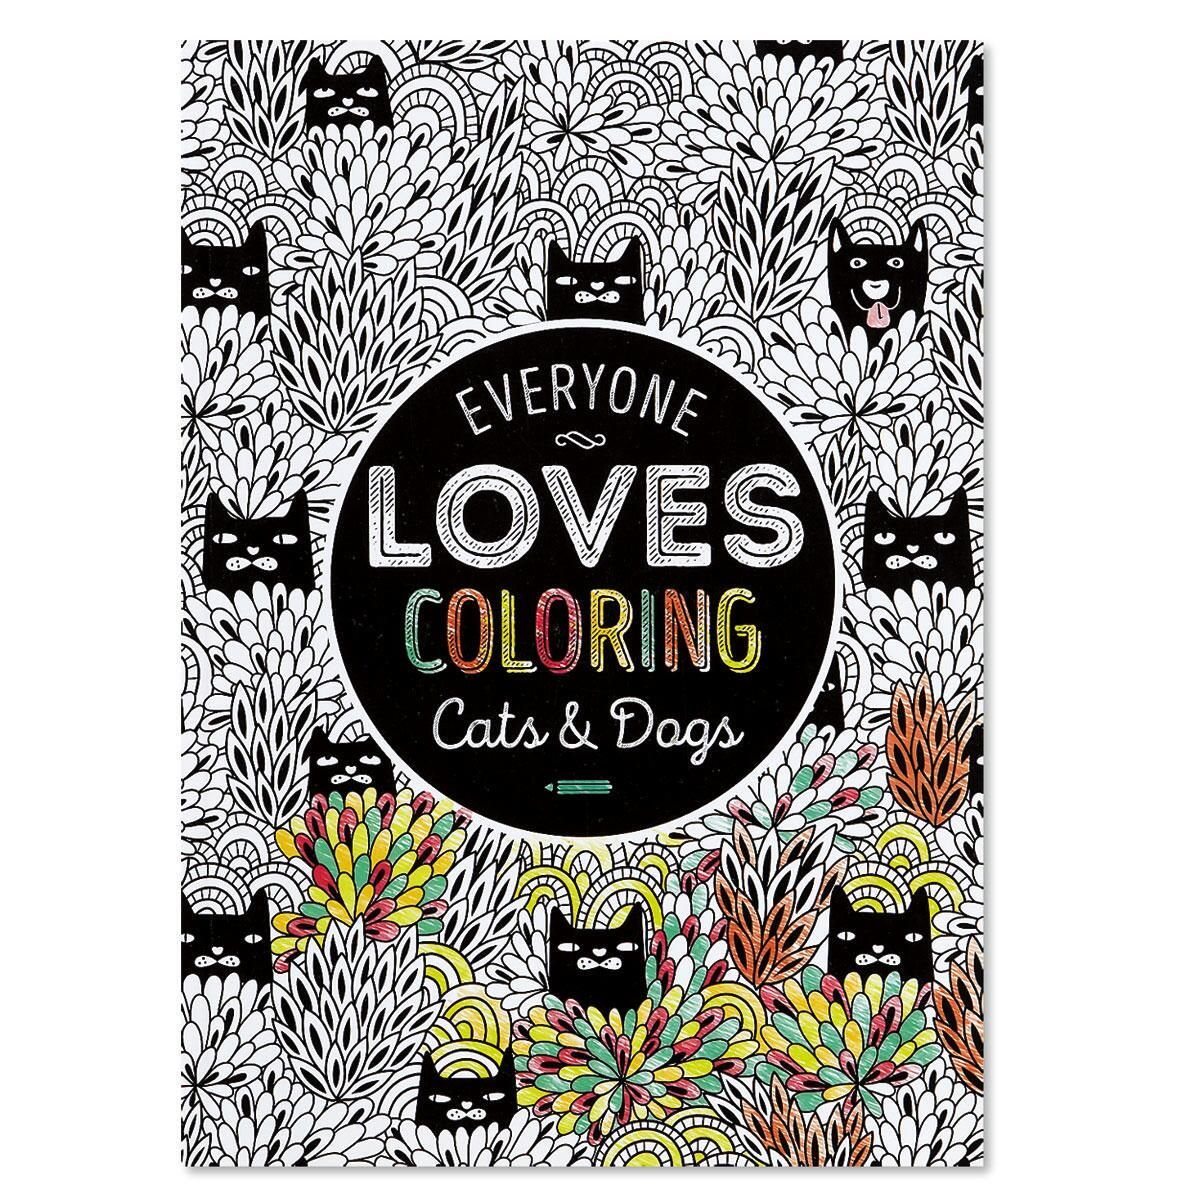 Cats & Dogs Coloring Book for Adults